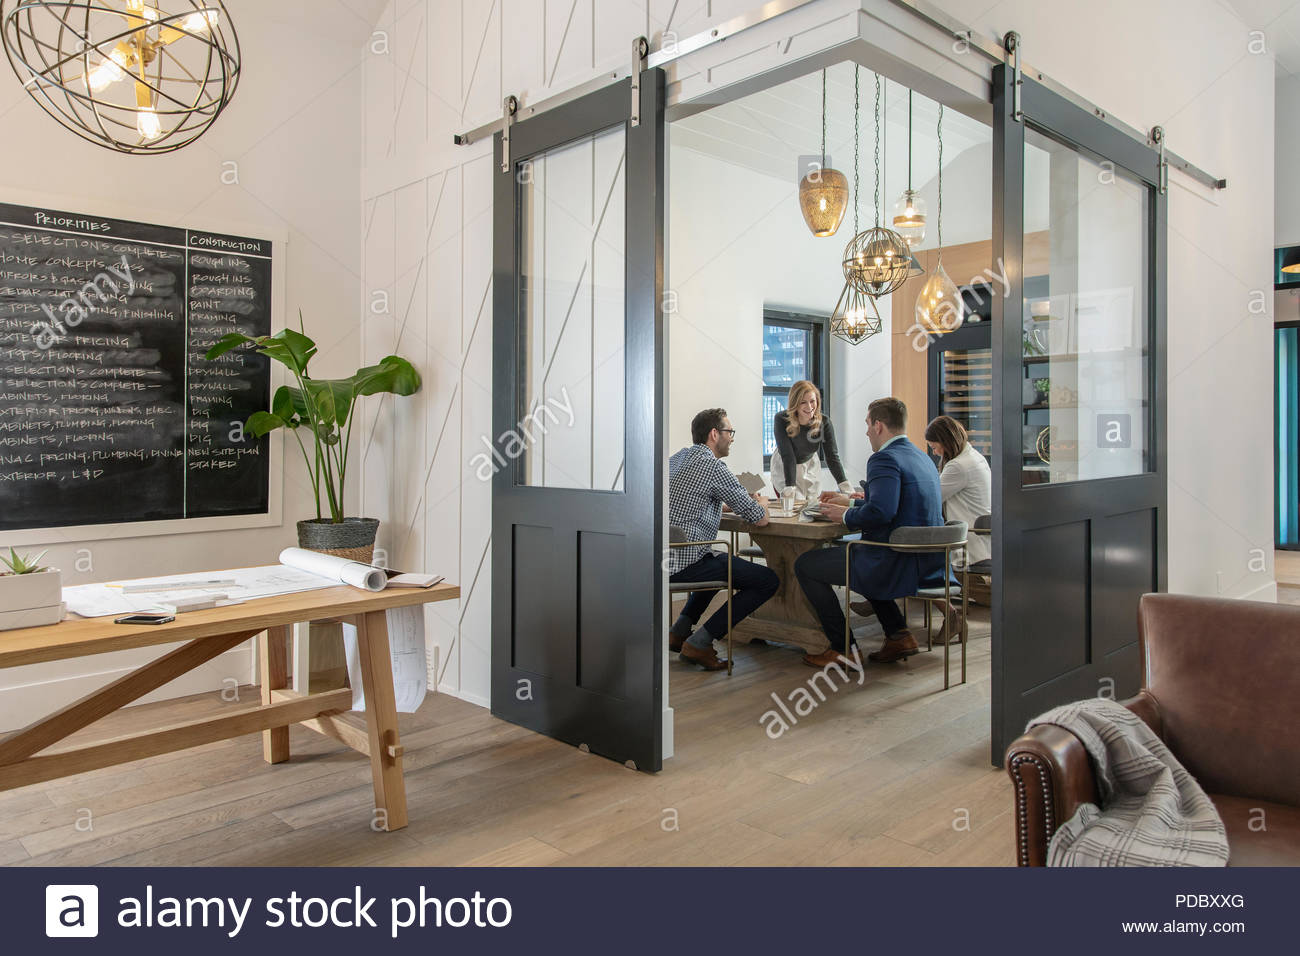 Home builder architects and designers planning in office meeting - Stock Image